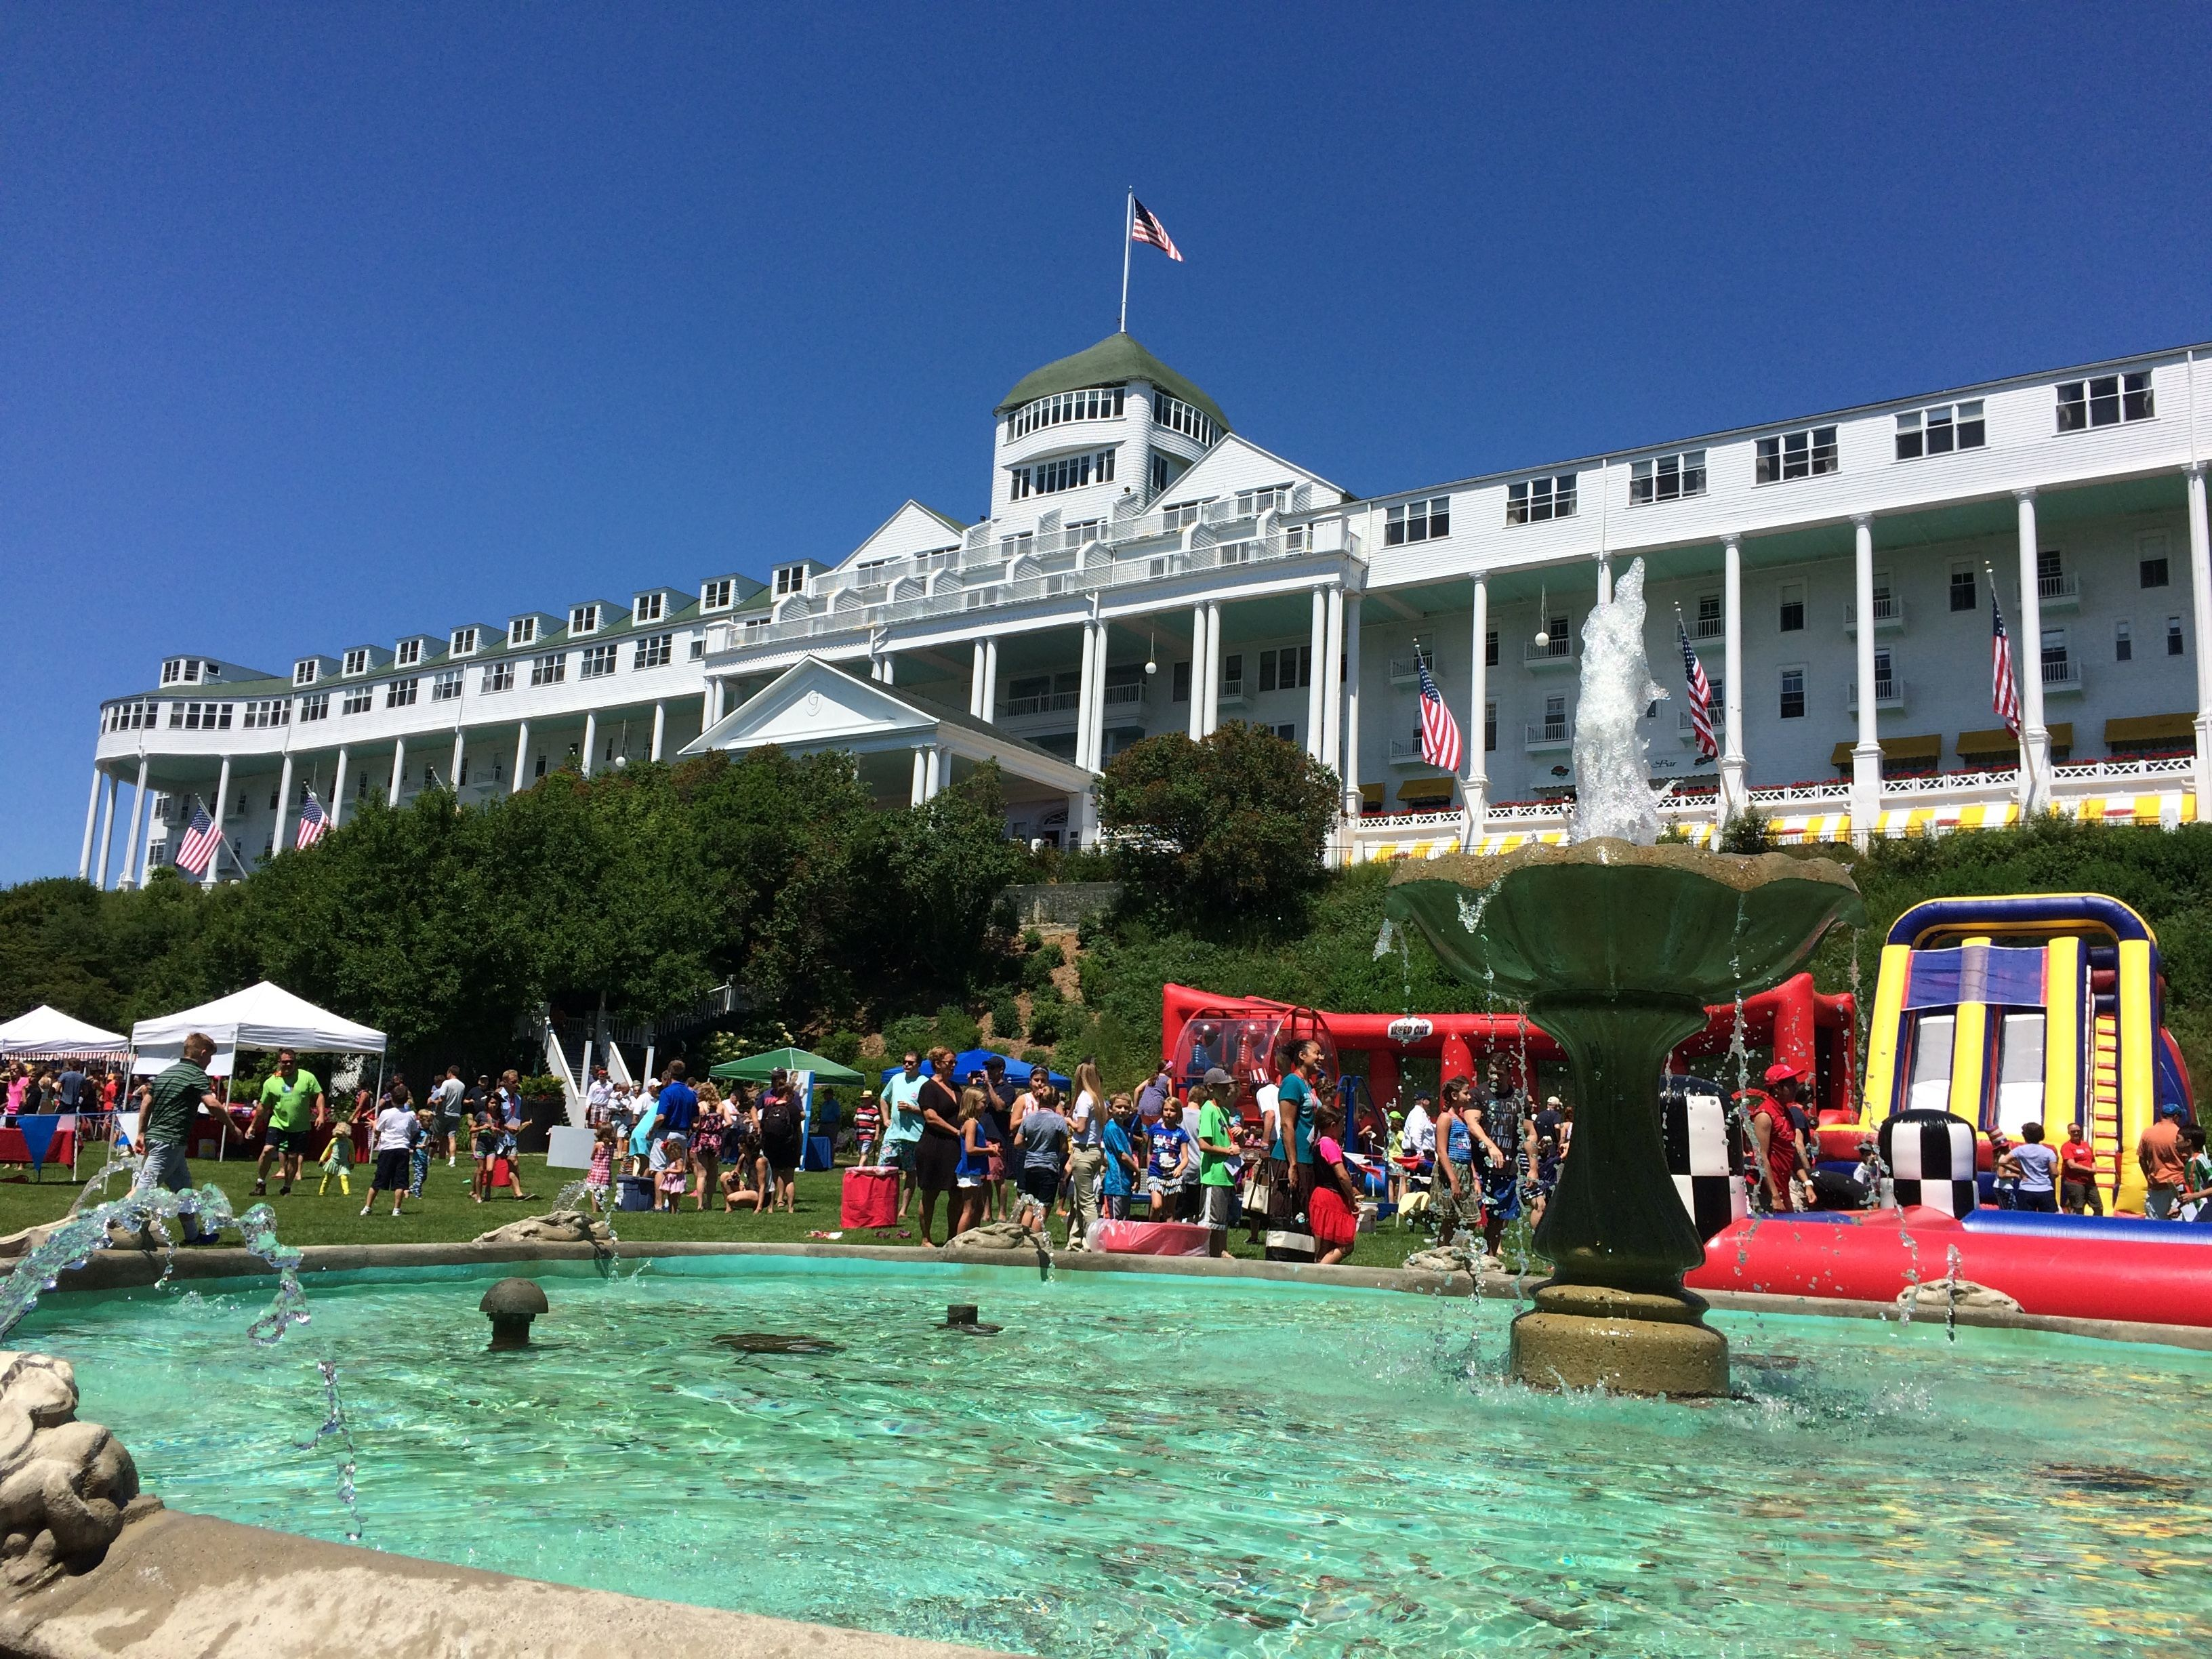 Grand Hotel On Mackinac Island From The Lawn Over The 4th Of July Great Place To Be Lots Of Family Activities Great Places Grand Hotel Mackinac Island